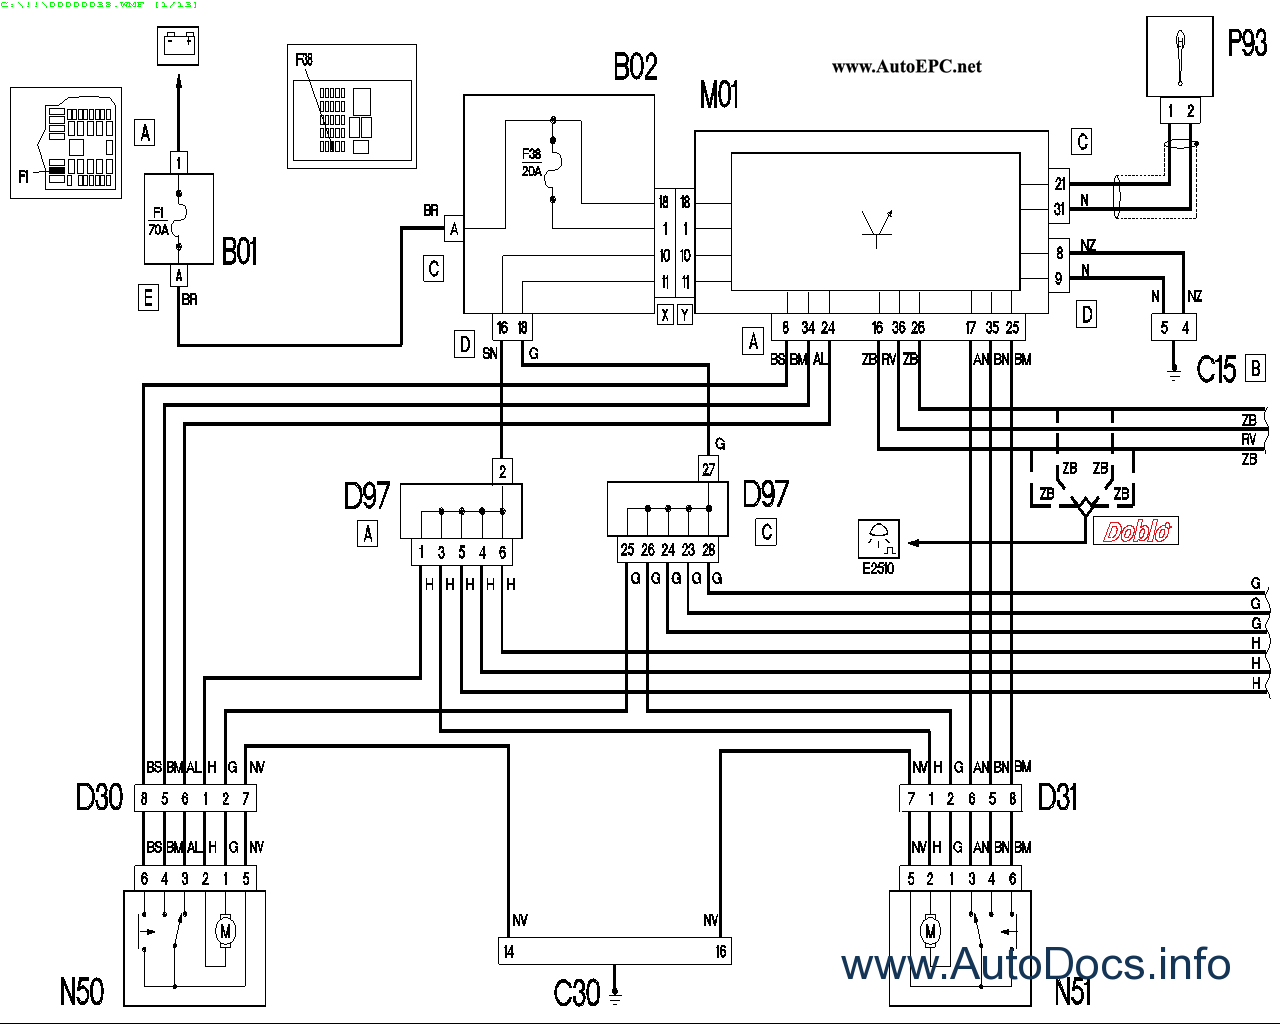 Fiat Doblo Radio Wiring Diagram Explained Diagrams Hisun For Light Switch U2022